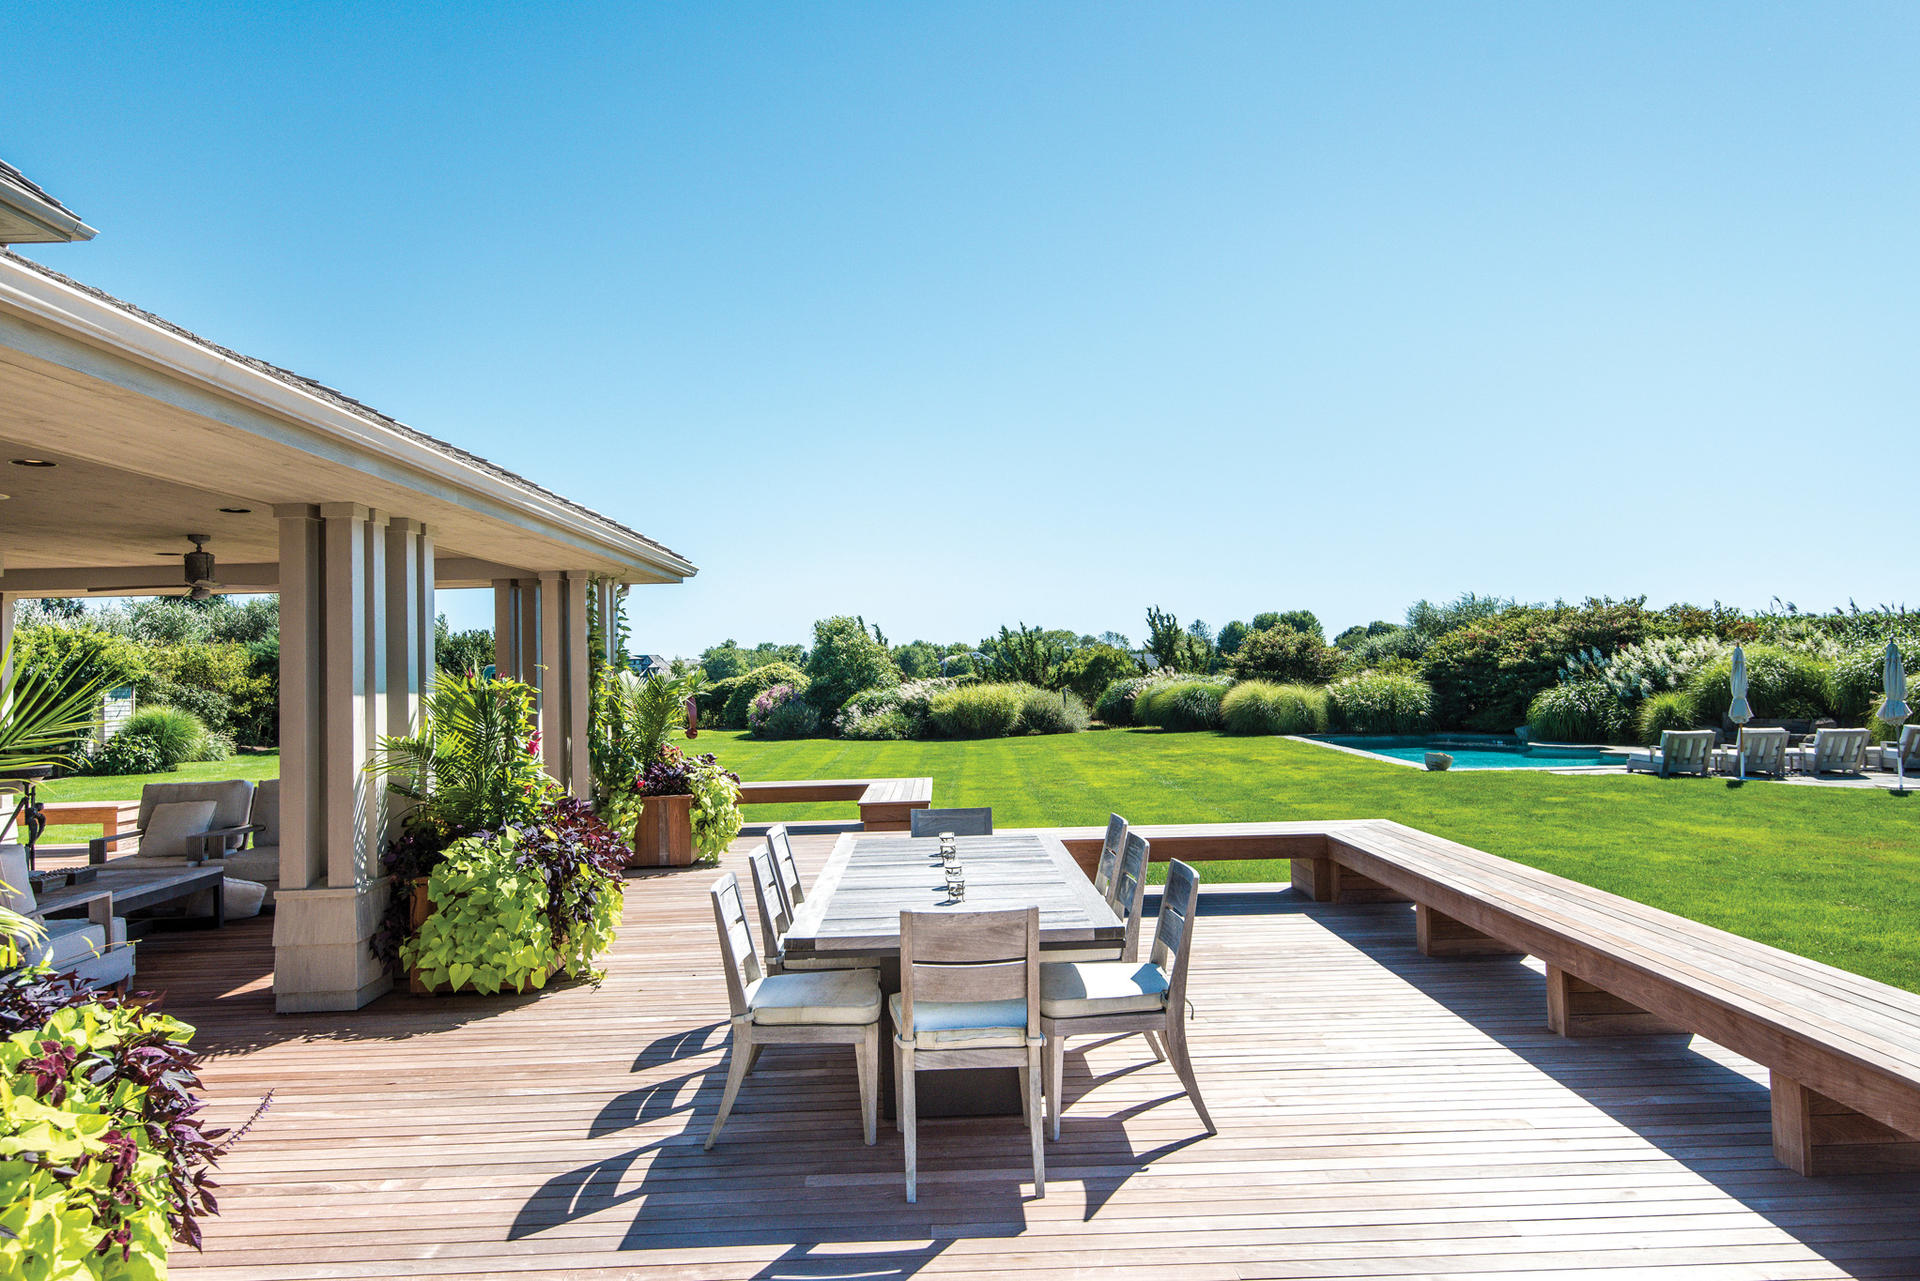 Additional photo for property listing at Superlative Sagaponack South Estate 836 Sagg Main St,  Sagaponack, New York